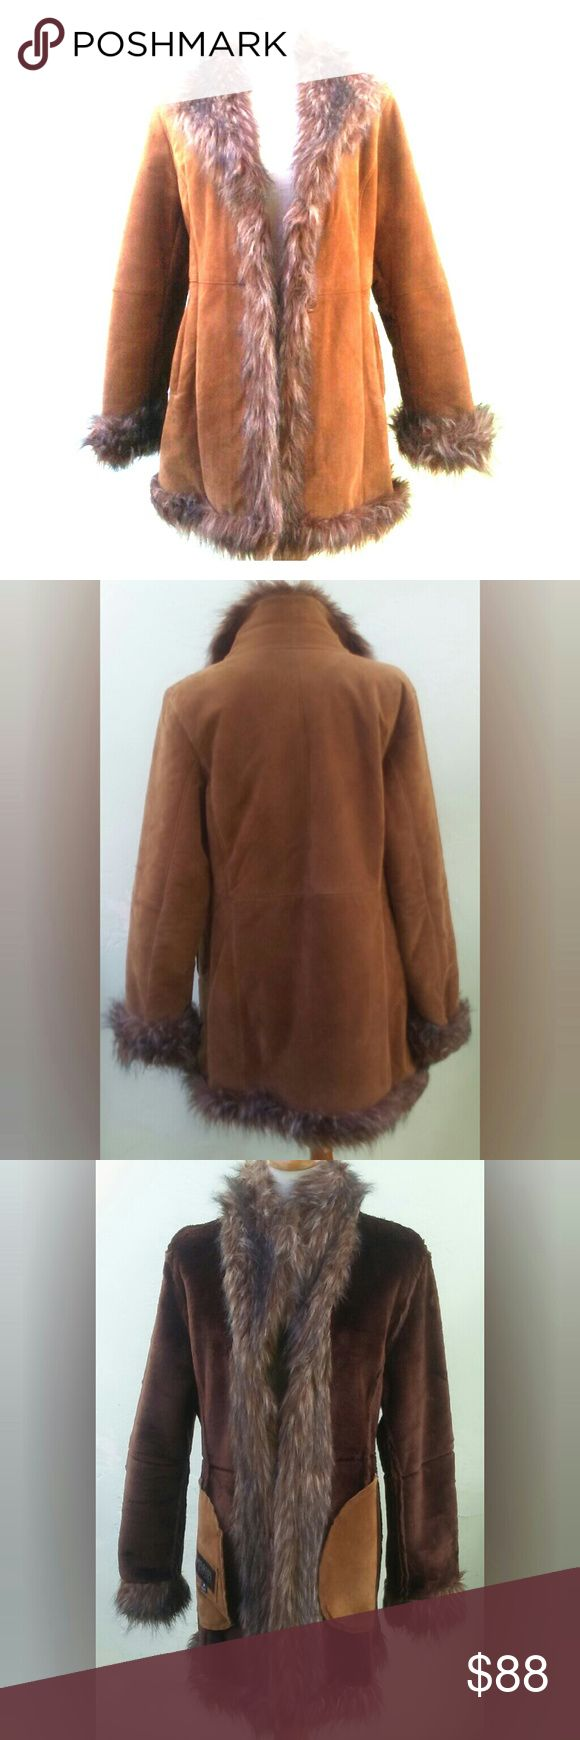 """Vintage 70s real Suede Boho Faux fur collar trim This rich retro 70s style soft suede jacket is made for this season with luxurious chocolate faux fur inside, deep suede pockets and fuzzy brown faux fur on collar and trim. Has one button closure or can be left open Made by Wilson Leather size medium See minor fur damage shown in photo on bottom trim. Not noticeable unless inspected. Very """"Almost Famous"""" hippie rocker chic...a classic trending again! Perfect Fall or winter coat. Wilsons…"""